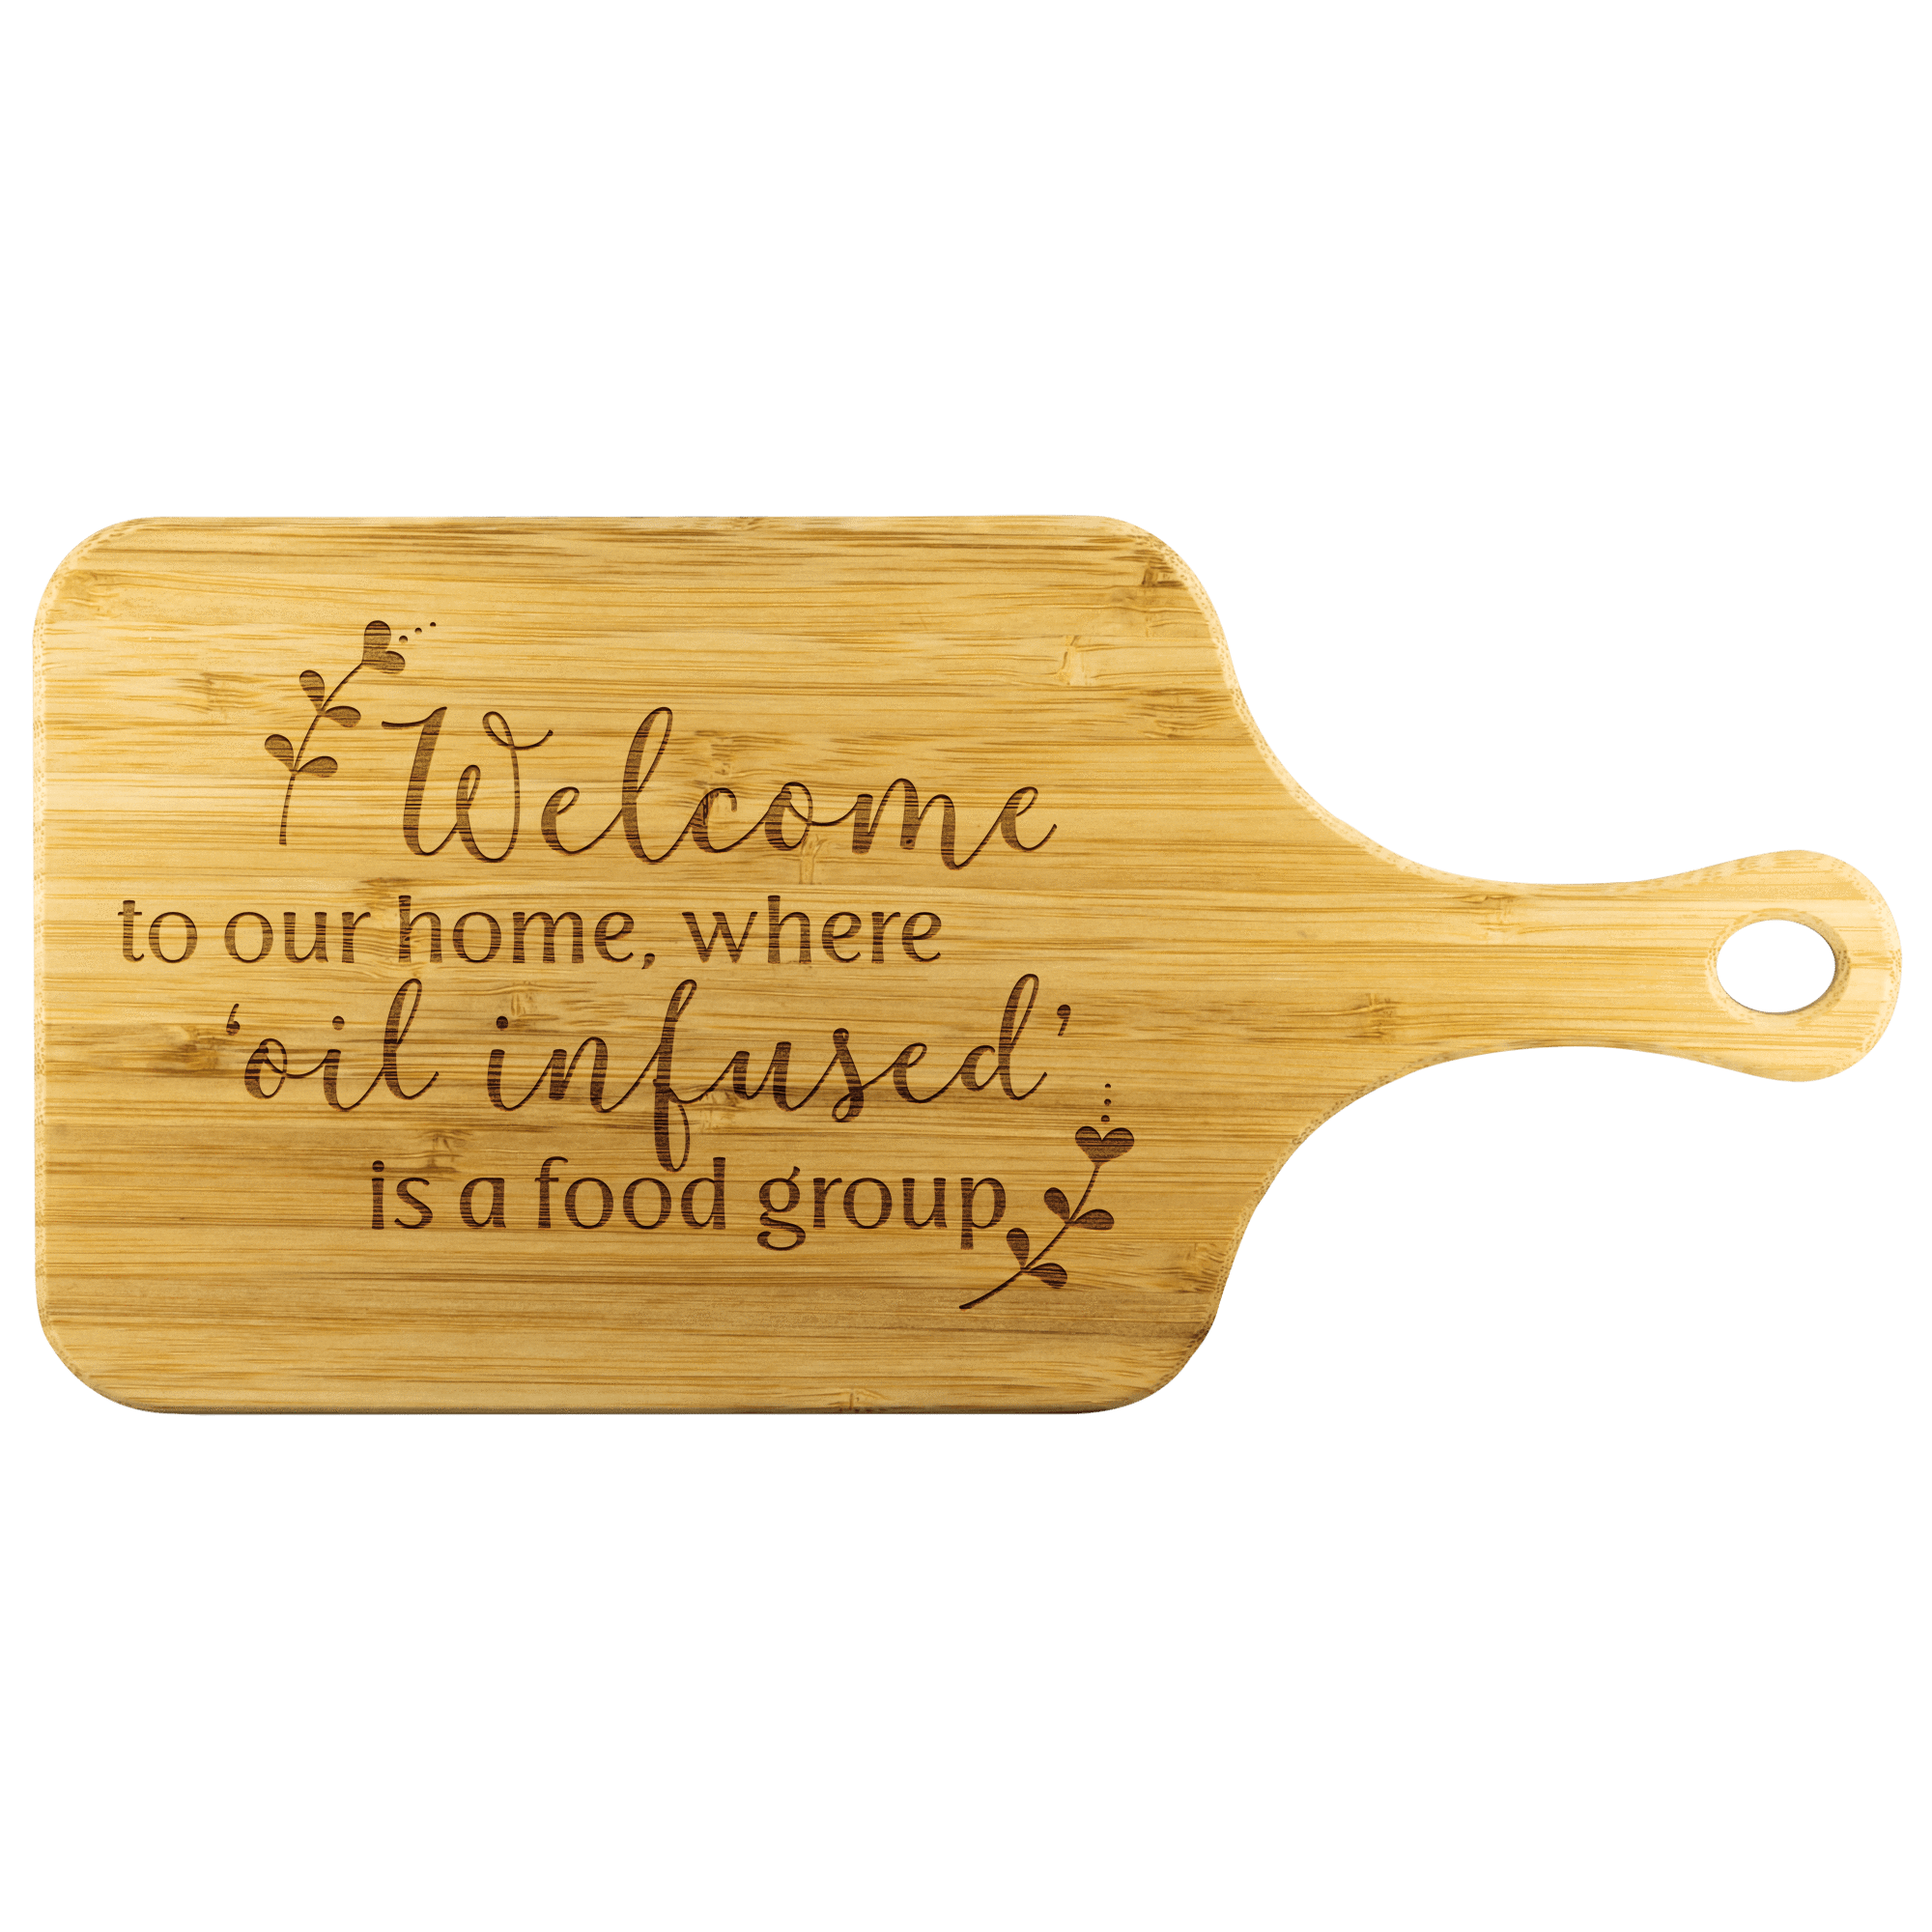 Bamboo Wood Cutting Board With Handle Welcome To Our Home Where